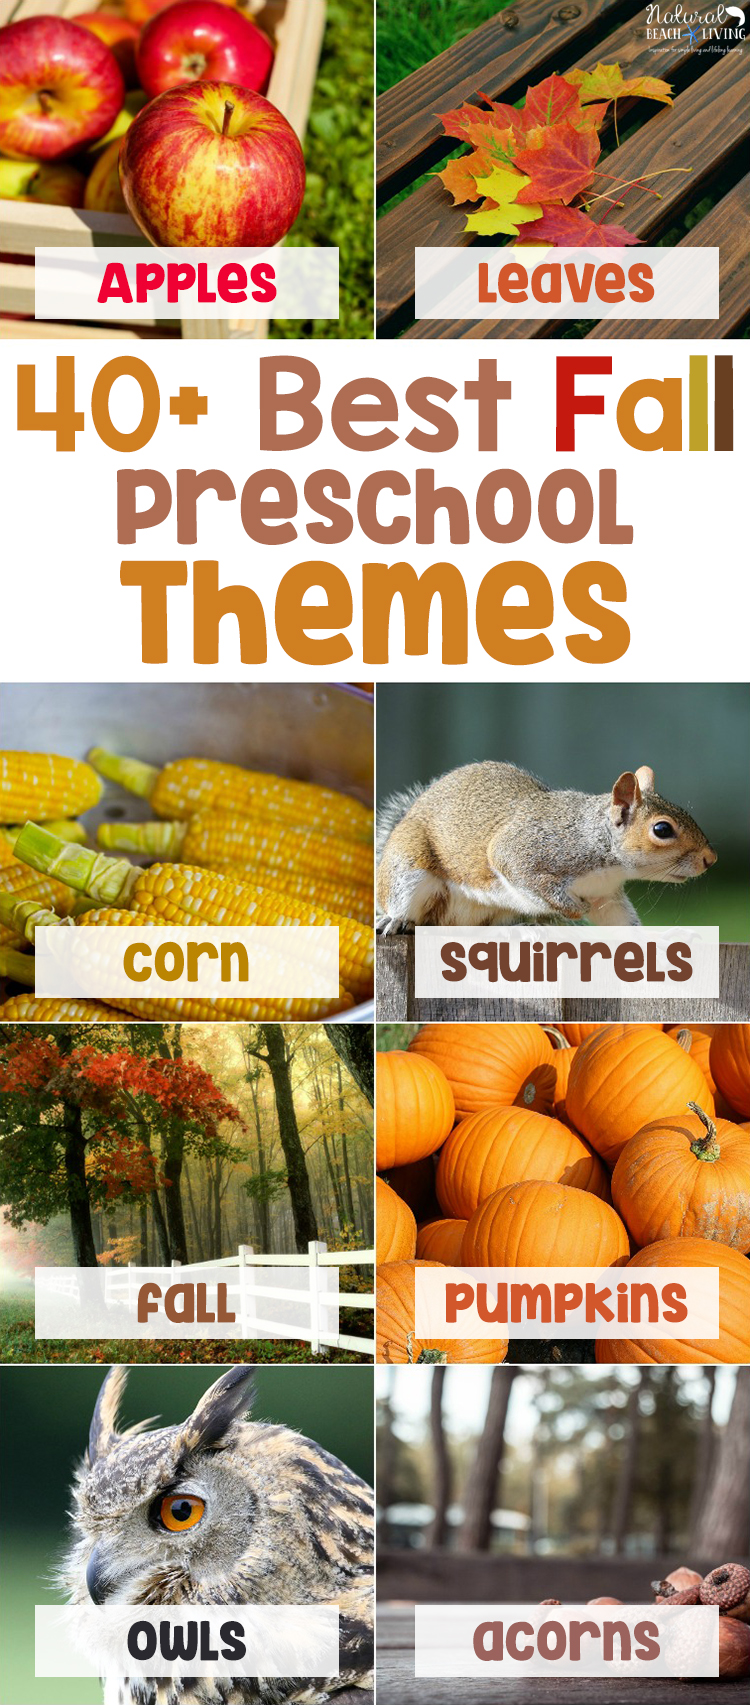 October Preschool Themes with Lesson Plans and Activities, Find all of your Fall Themes for Preschool with hands on learning activities and printables. Including Pumpkin science, Farm Theme, Leaf Theme, PUMPKIN ACTIVITIES, SCARECROWS, HALLOWEEN, Plus, Preschool Weekly Themes and a Free Printable List of Themes for Preschool